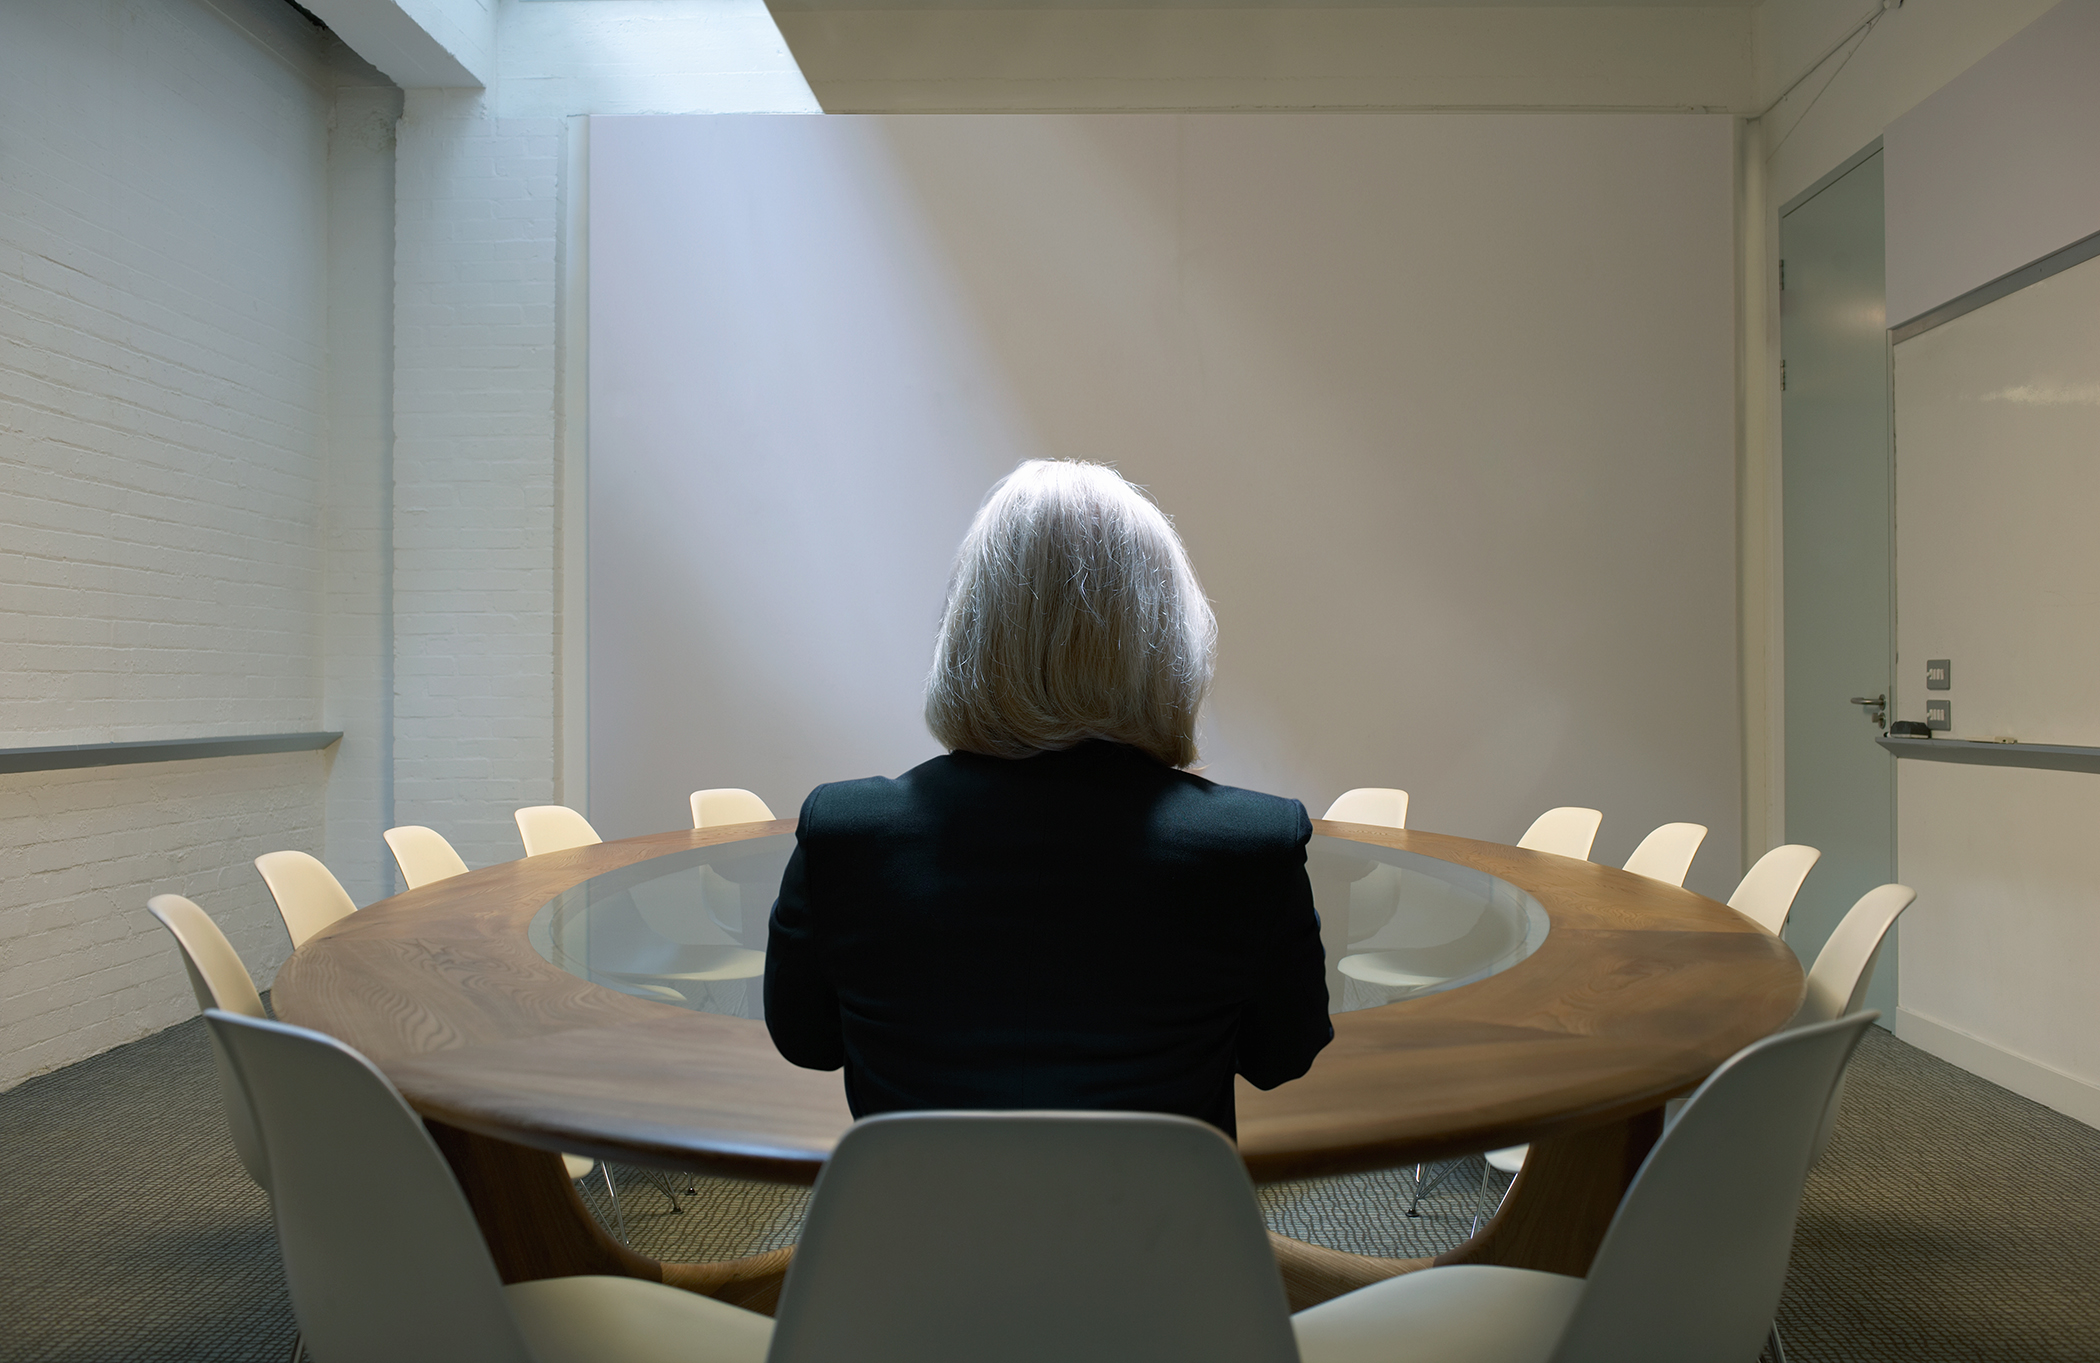 Female at board table